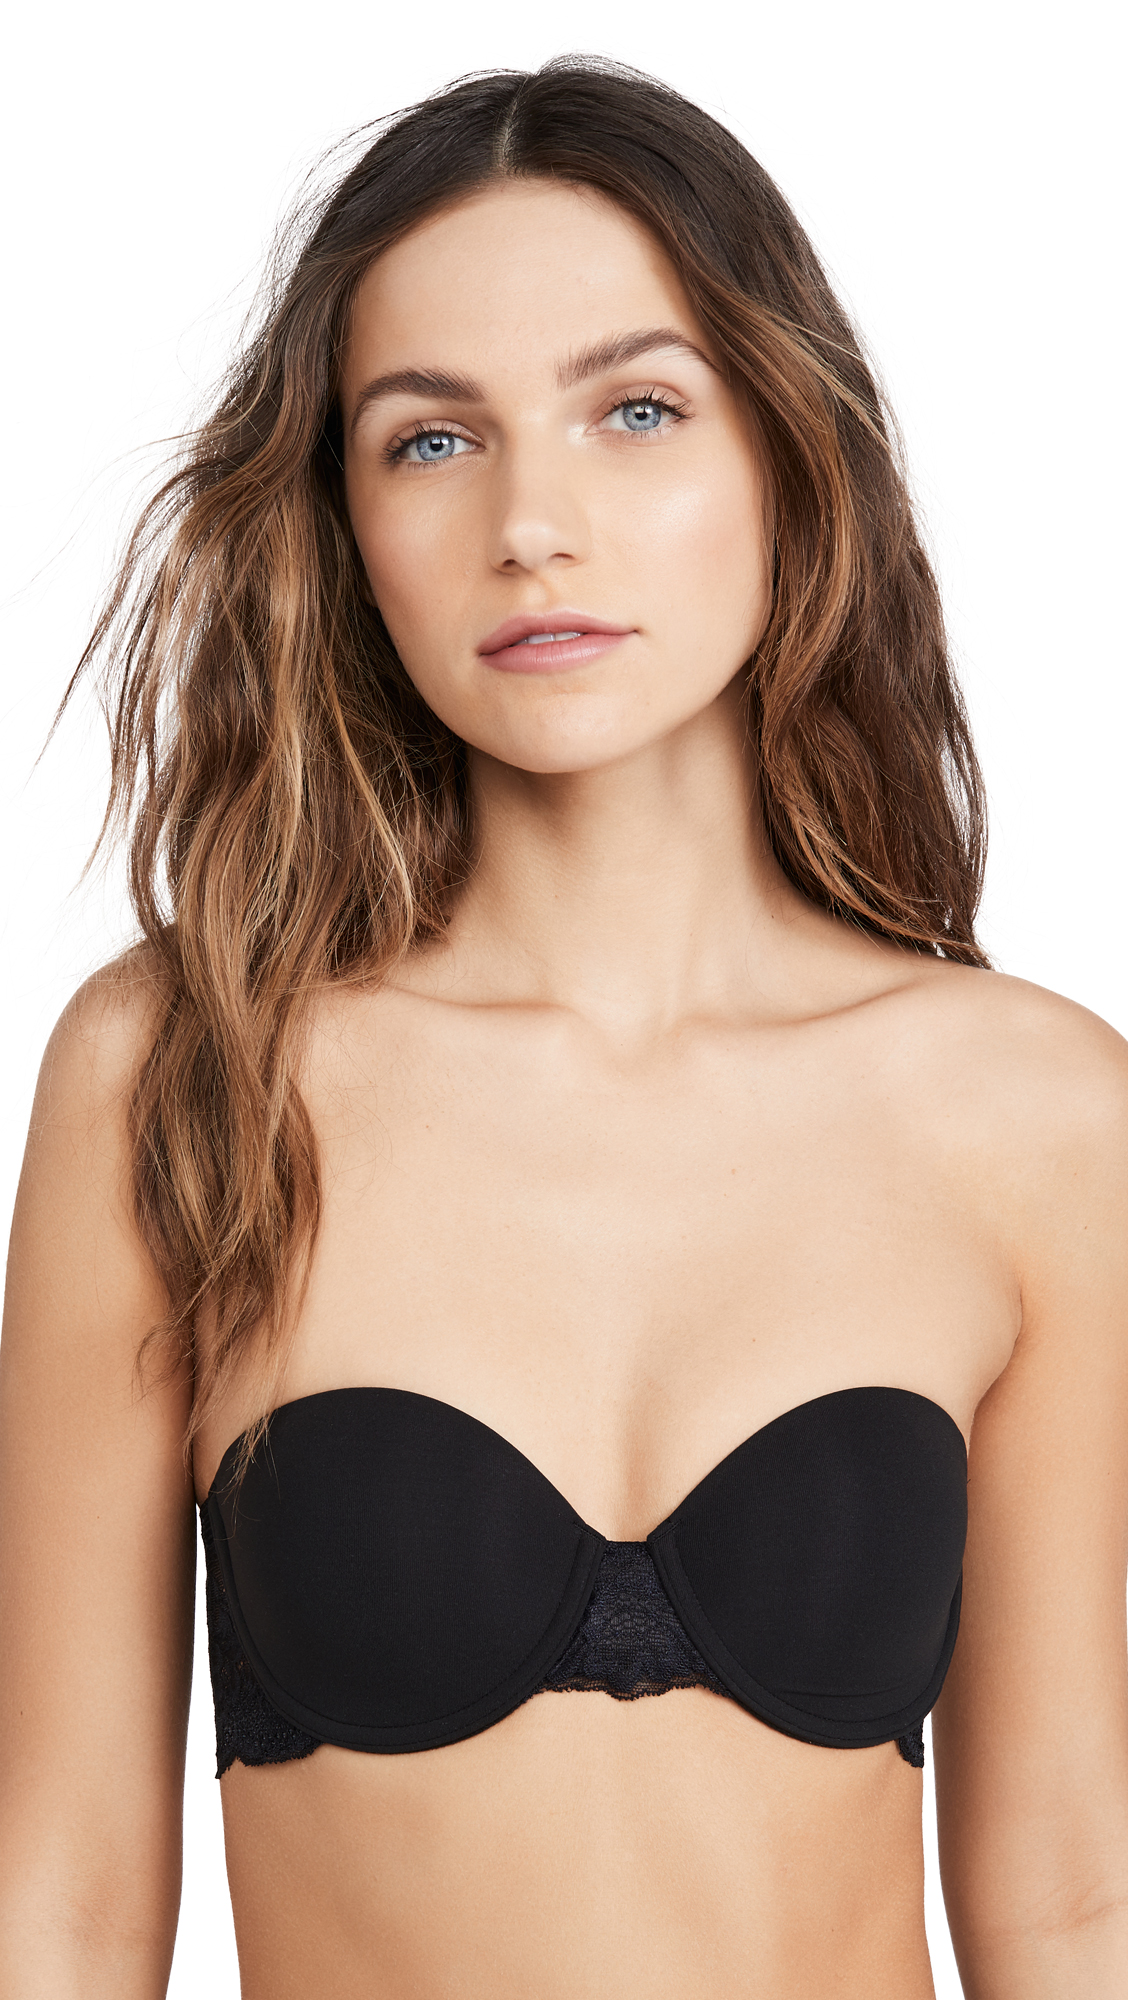 Skarlett Blue Strut Multi Way Strapless Bra